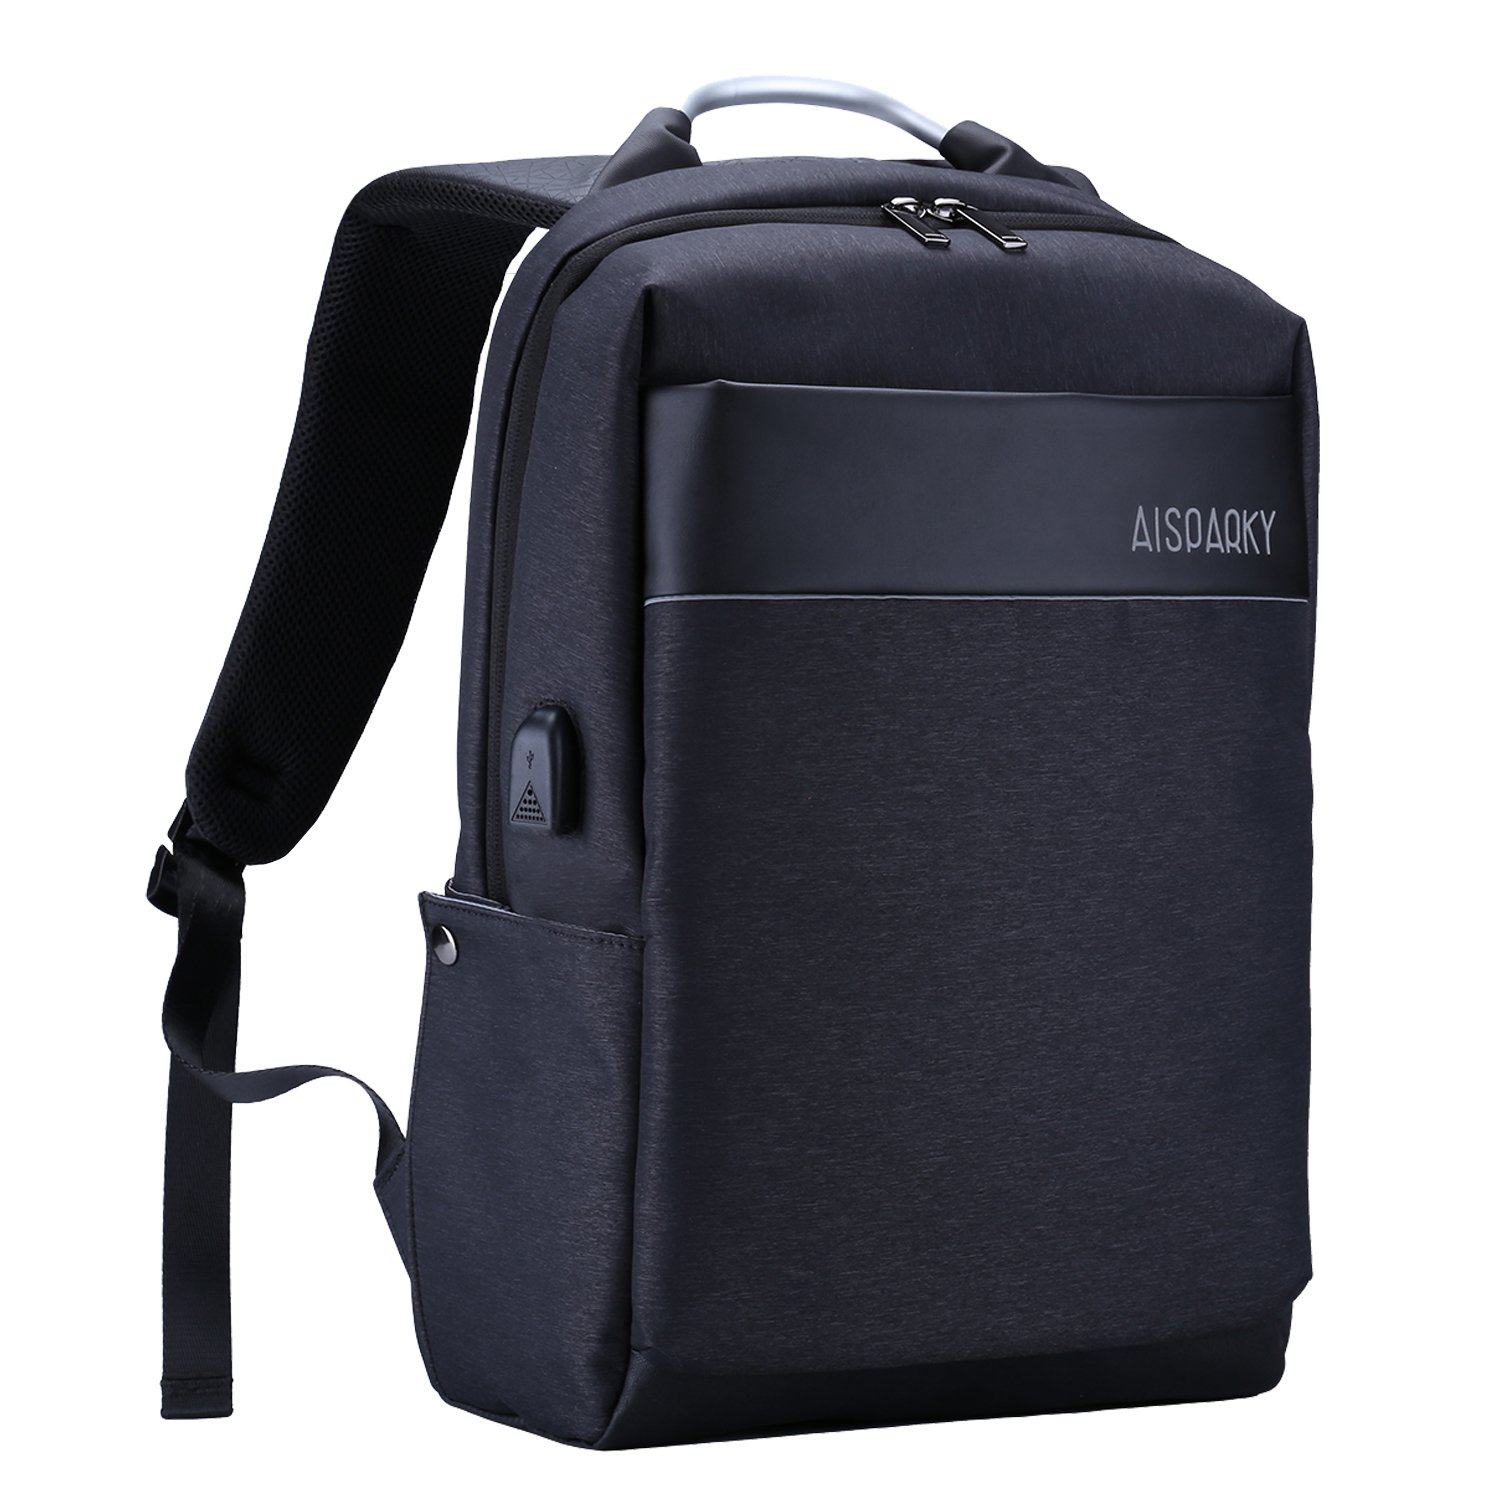 Travel Laptop Backpack, 15.6 Inch Business Computer Rucksack with USB Charging Port